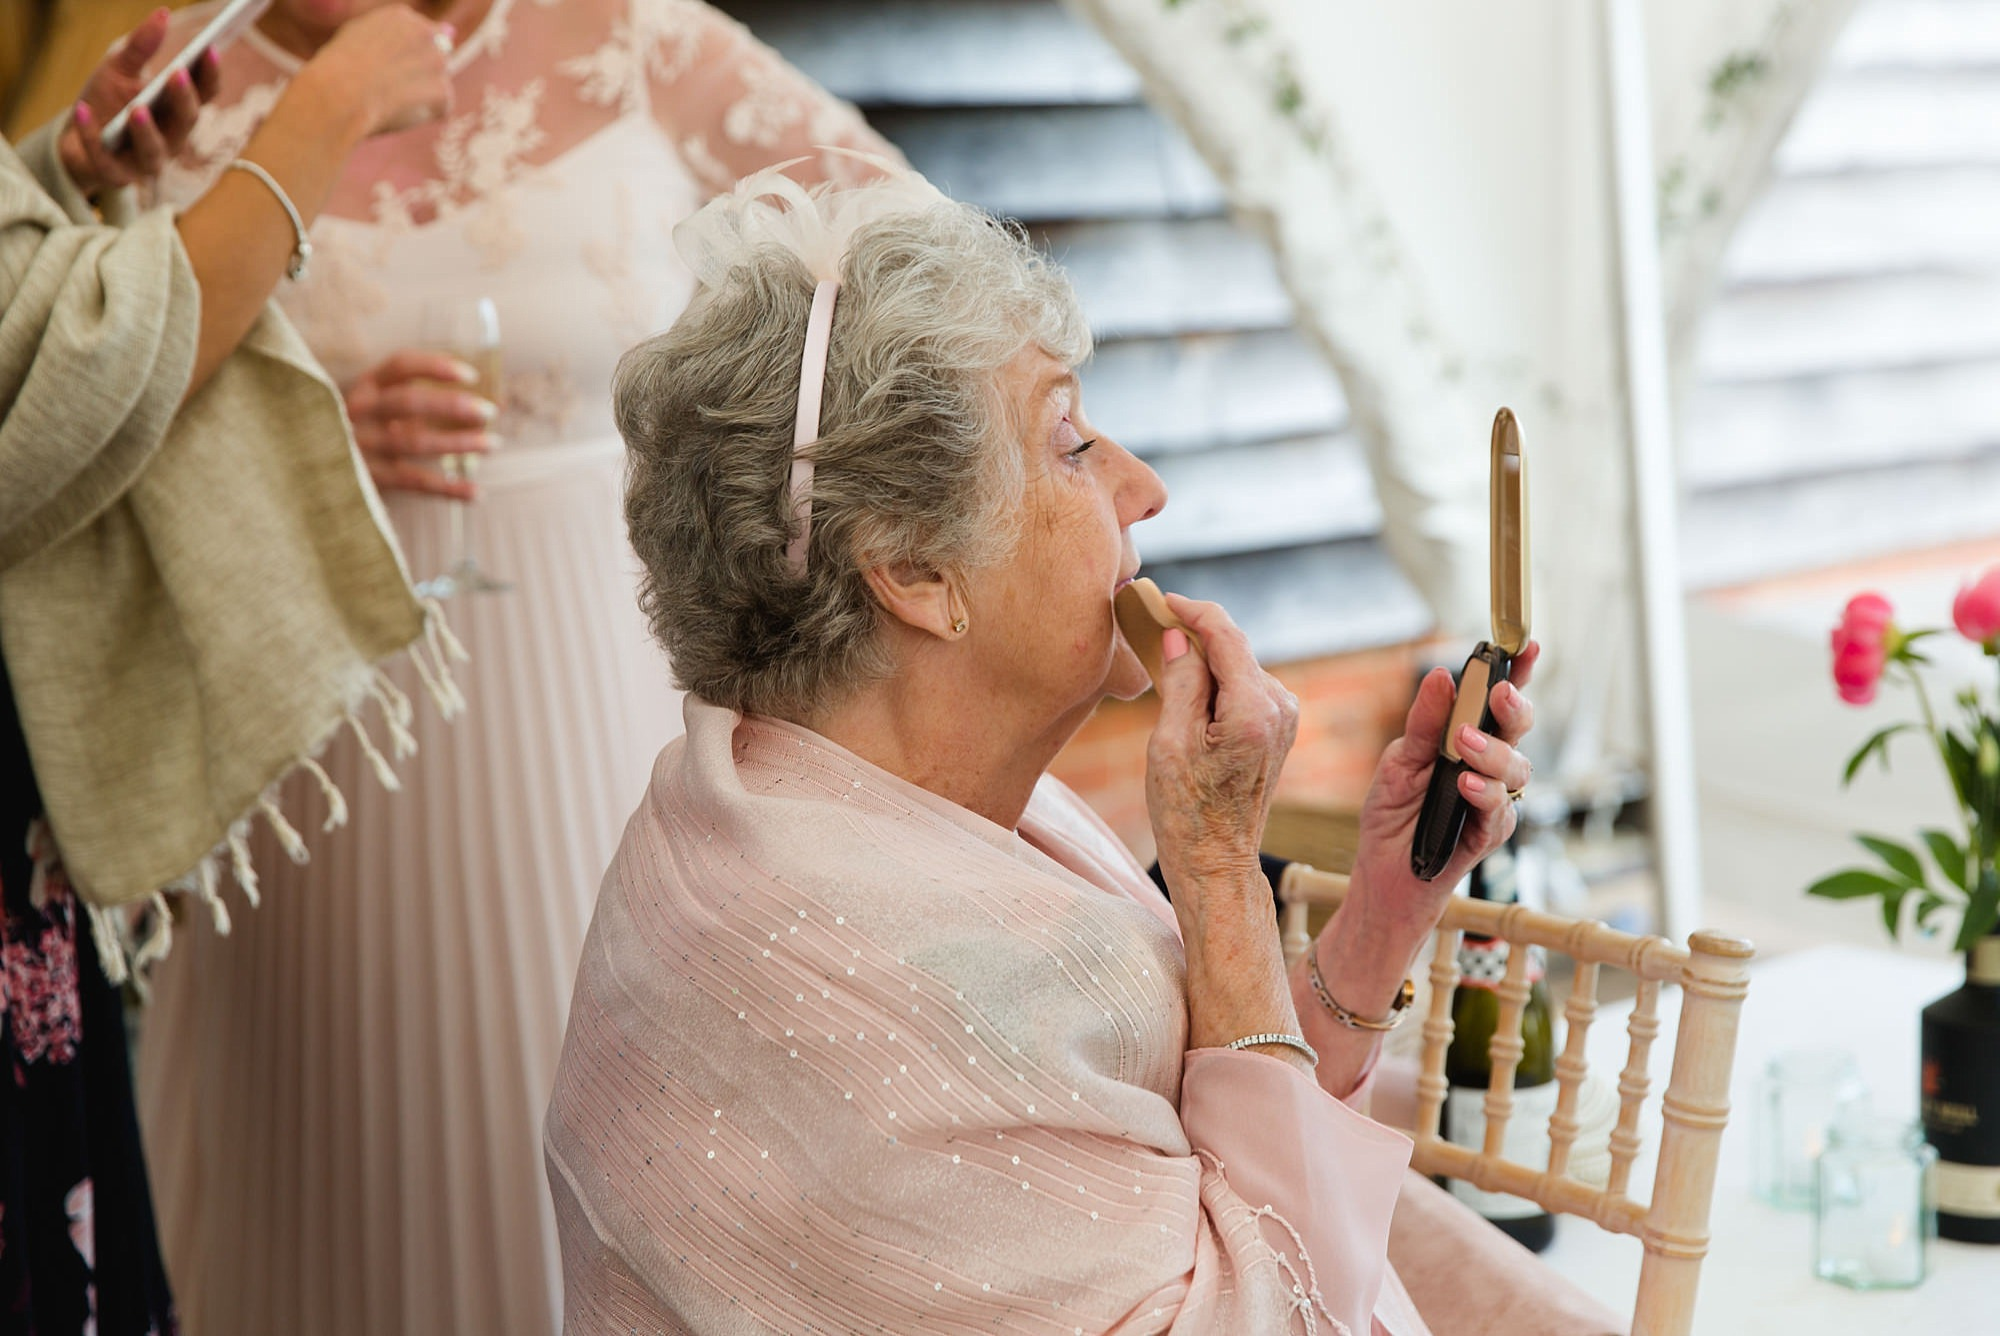 wedding guest reapplies makeup during reception at old greens barn wedding